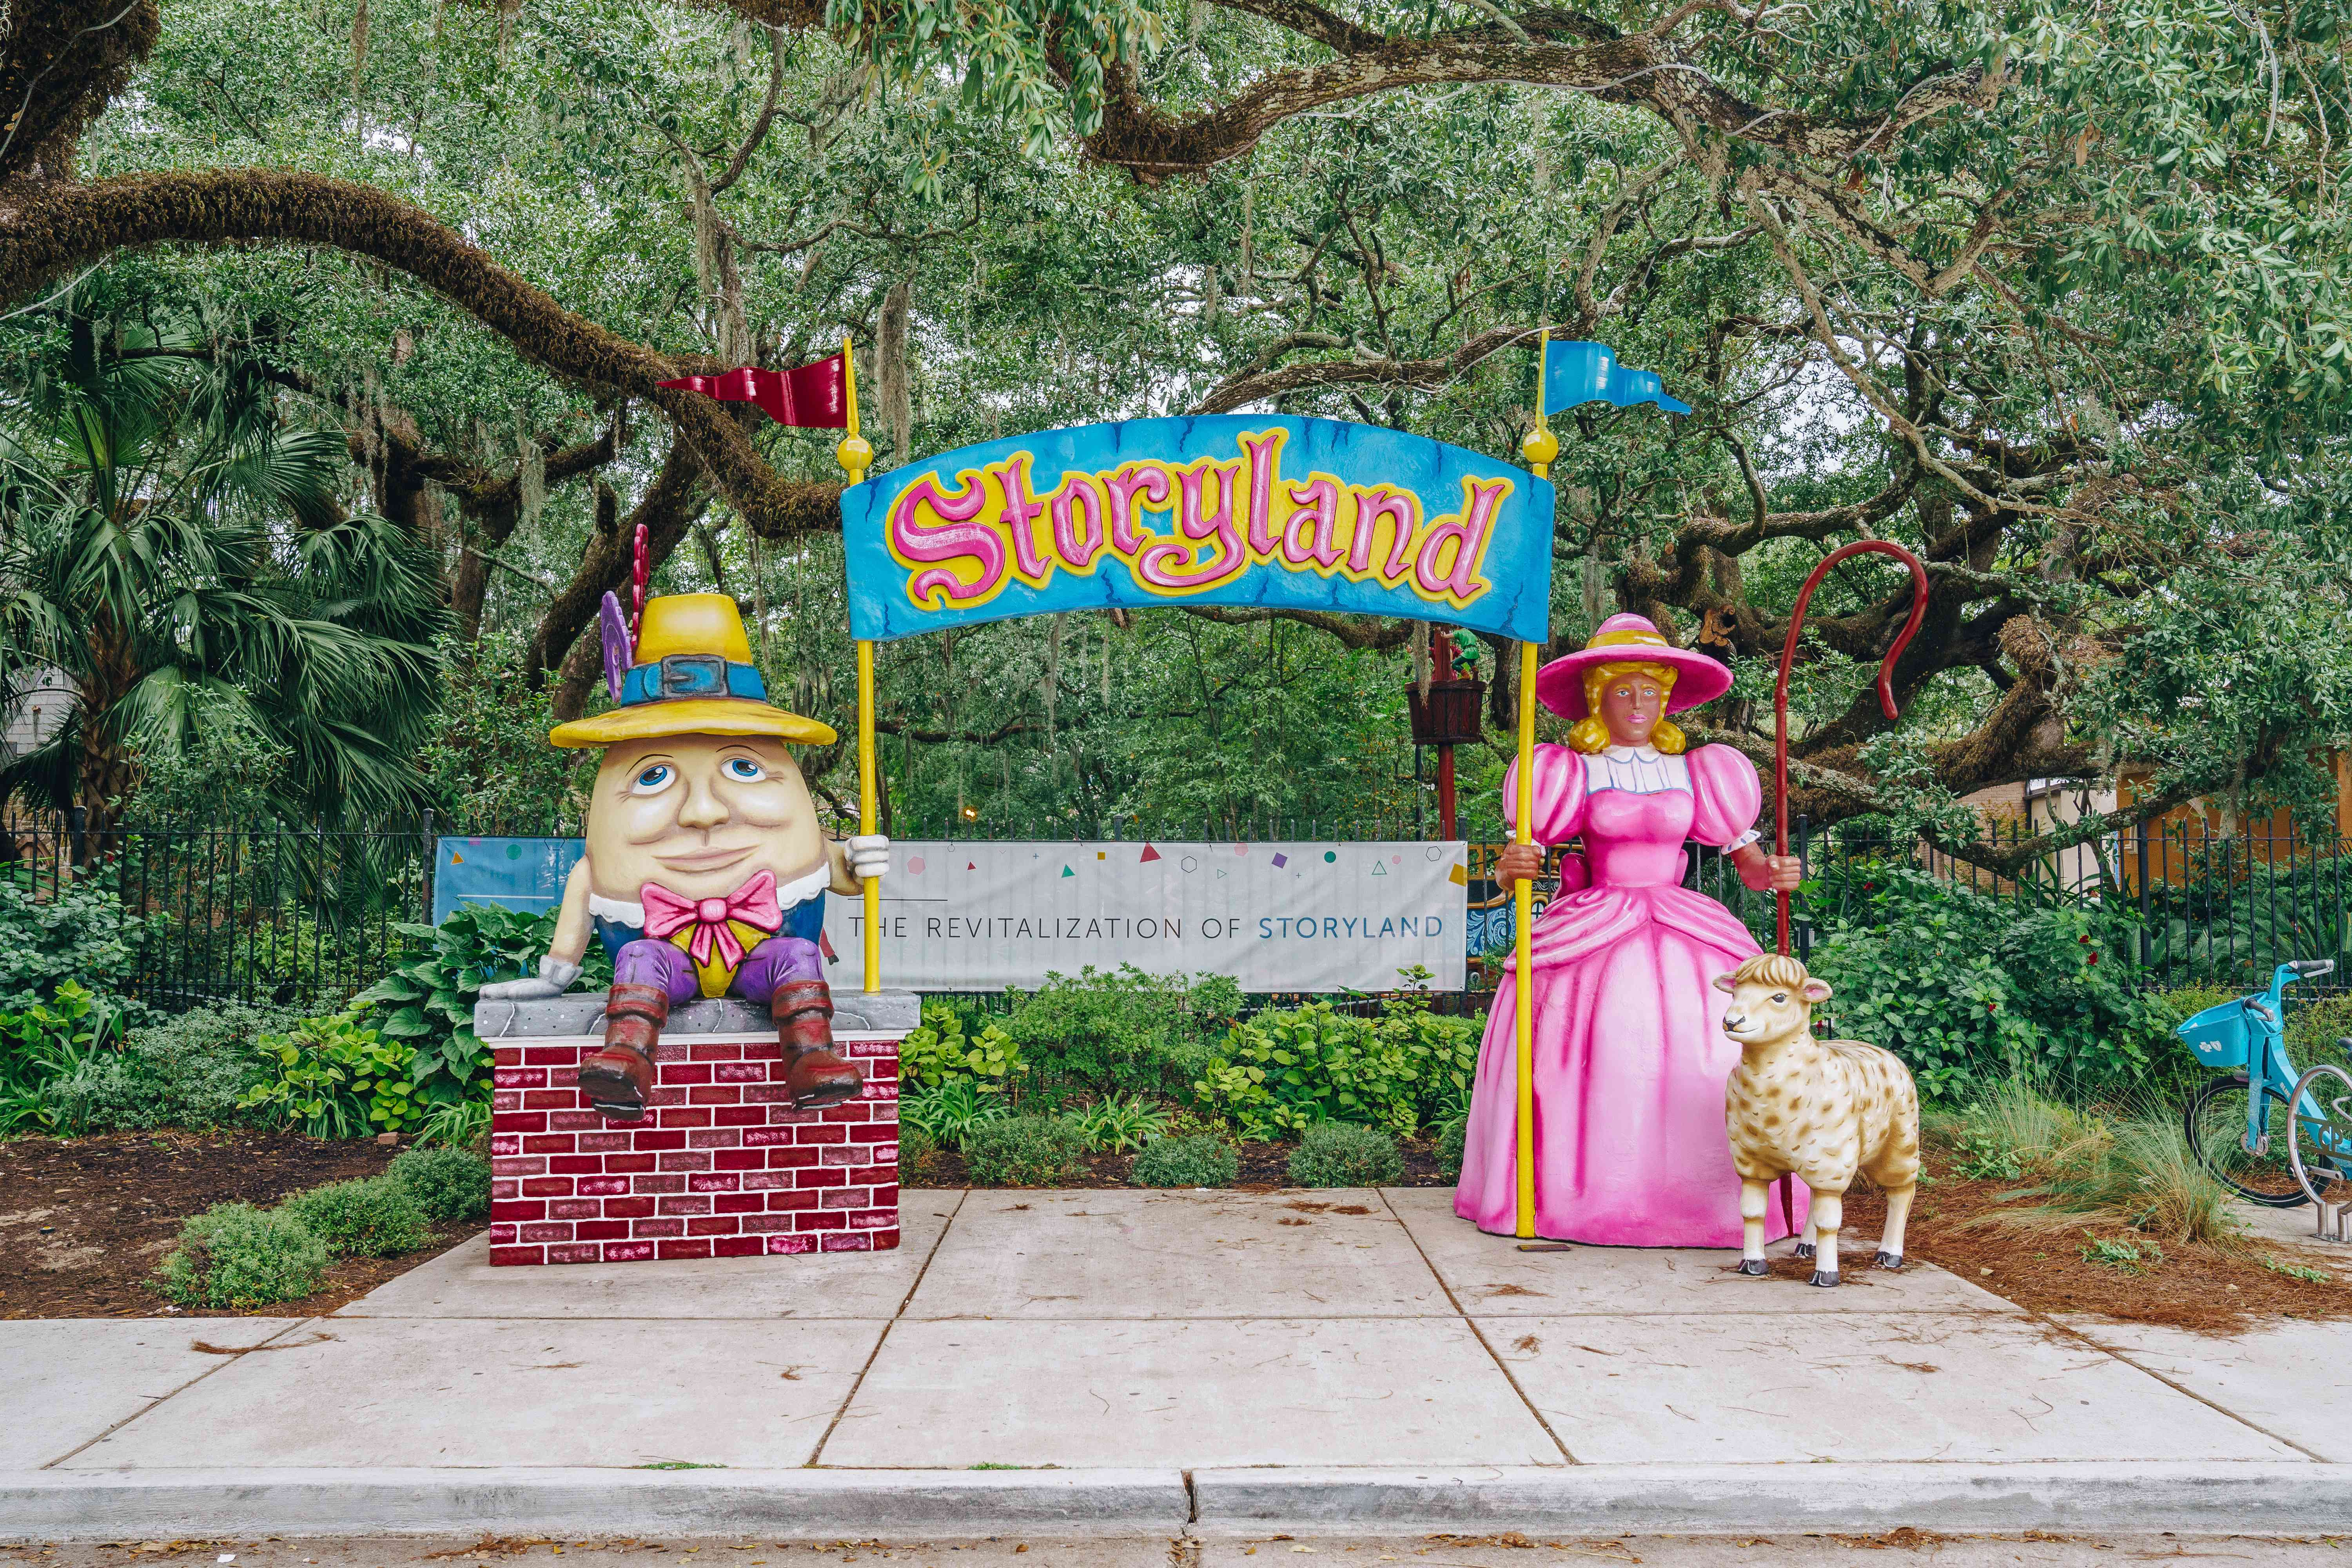 The entrance to Storyland